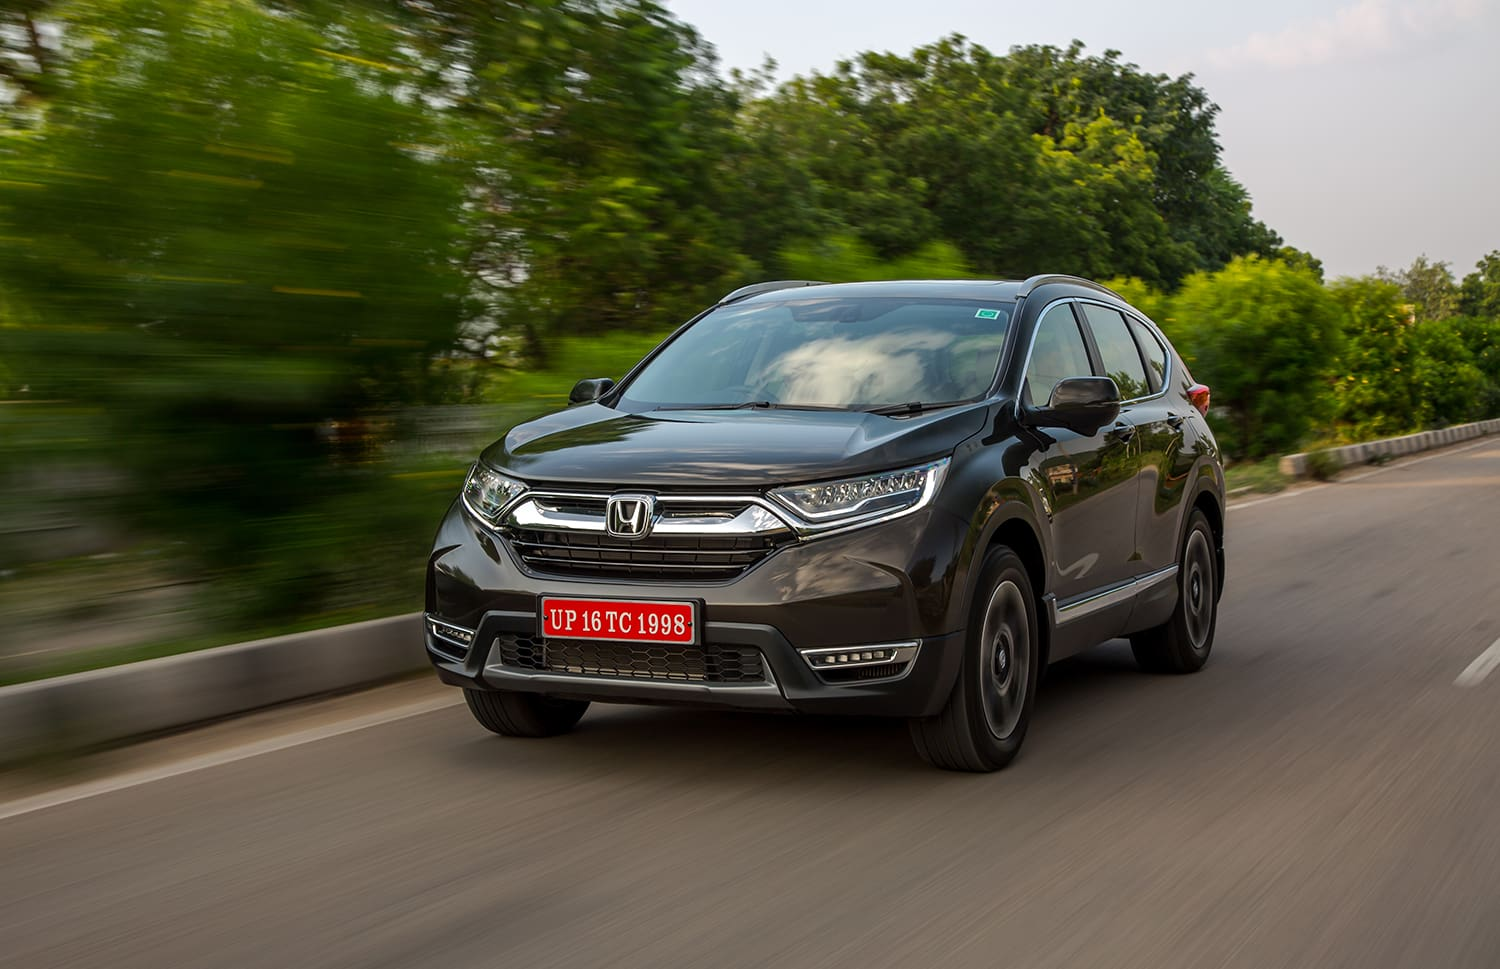 2018 Honda CR-V: First Drive Review